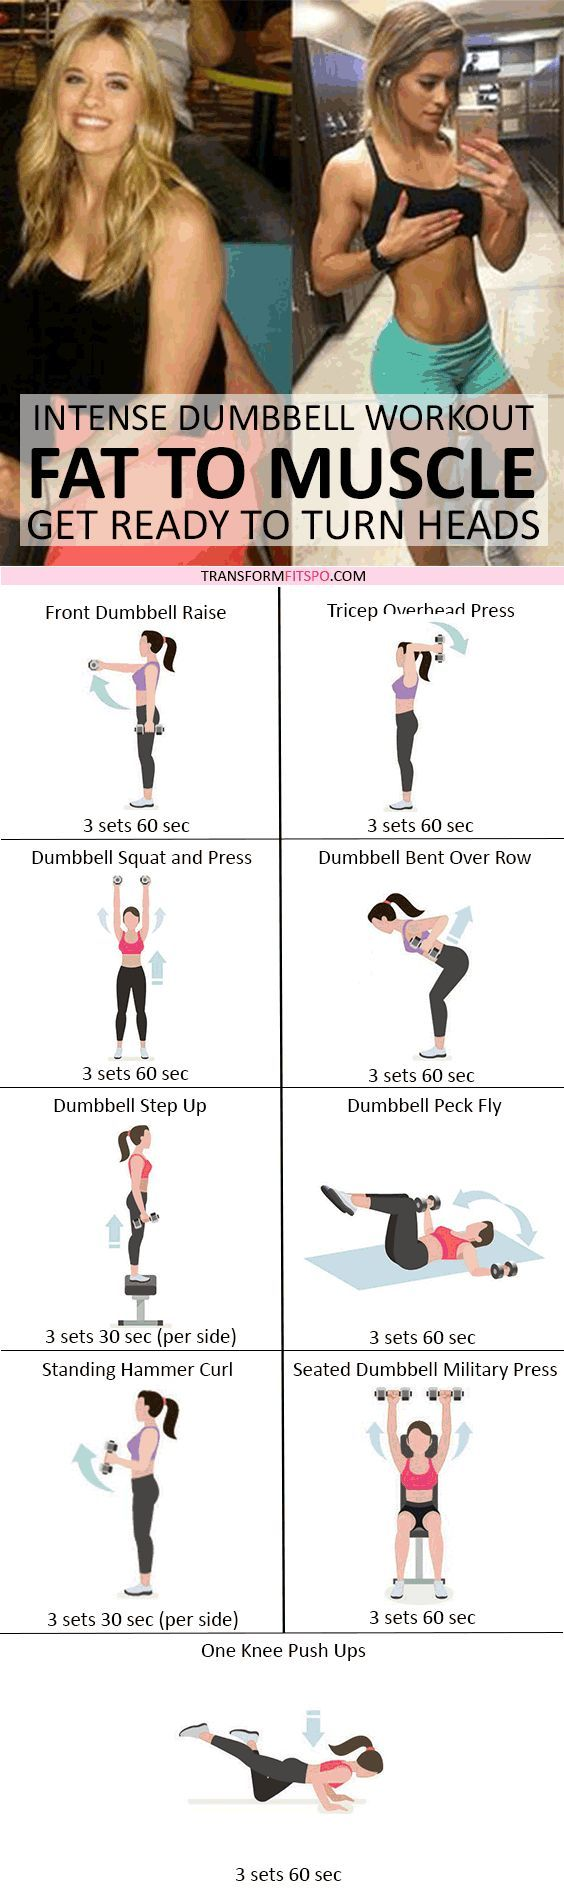 Rapid Results Dumbbell Workout! Adding Weights Will Turn Fat to Muscle! Get Ready to Turn Heads - Dumbbell - Ideas of Dumbbell #Dumbbell - #womensworkout #workout #femalefitness Repin and share if this workout turned your fat to muscle! Click the pin for the full workout.